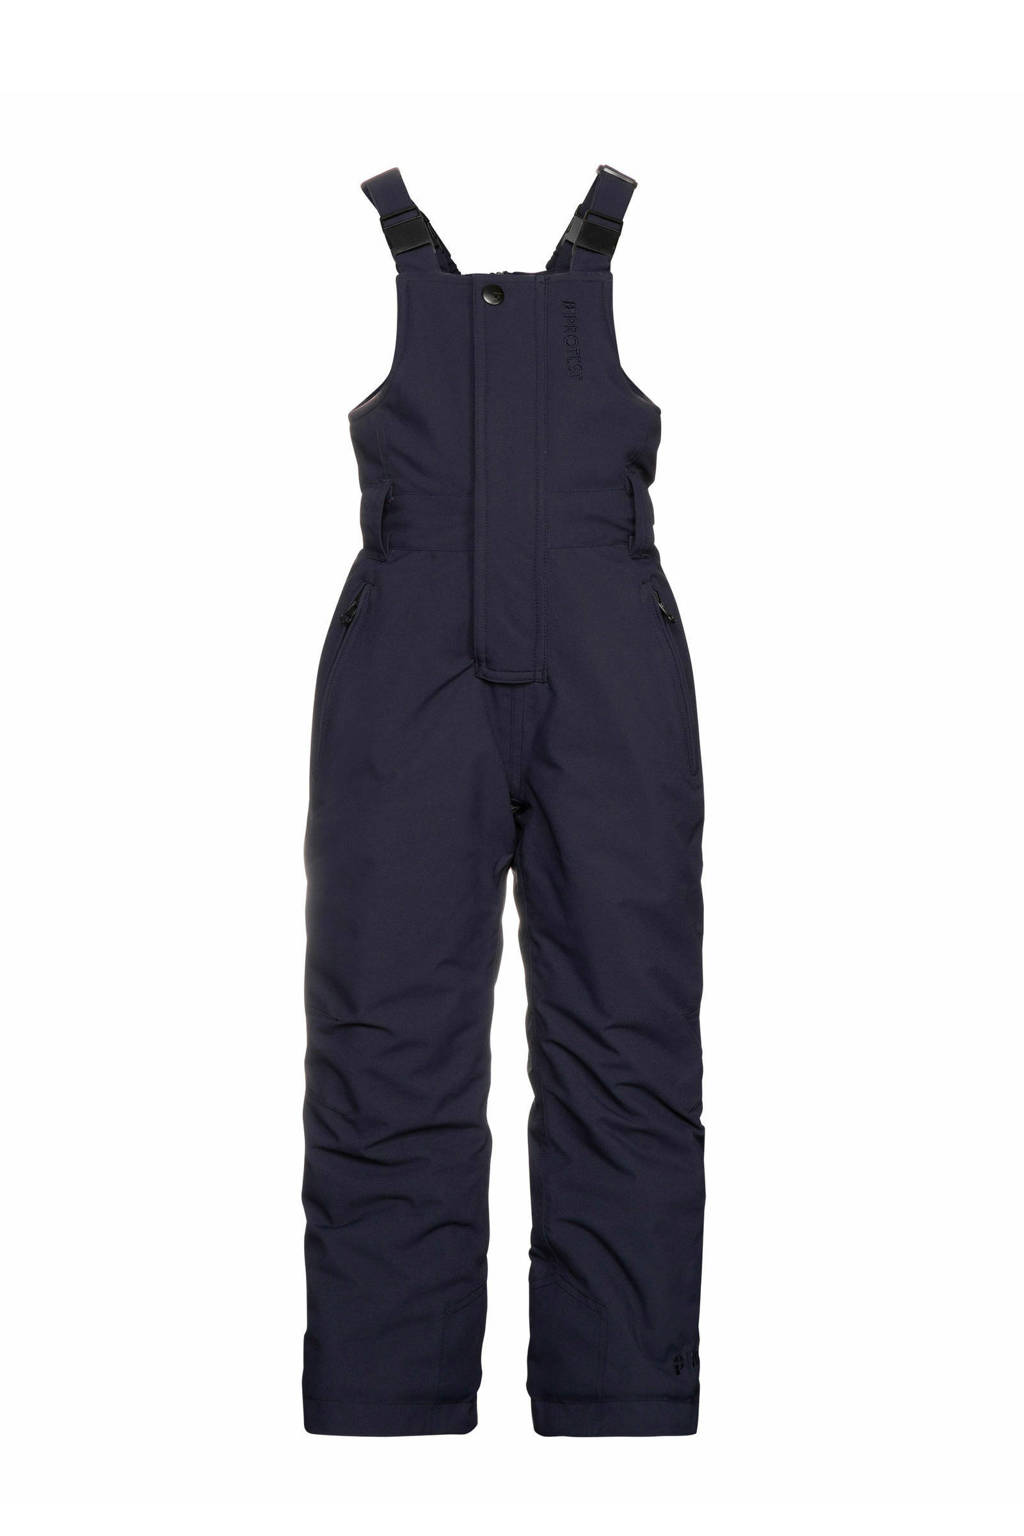 Protest skibroek Neutral donkerblauw, Space blue